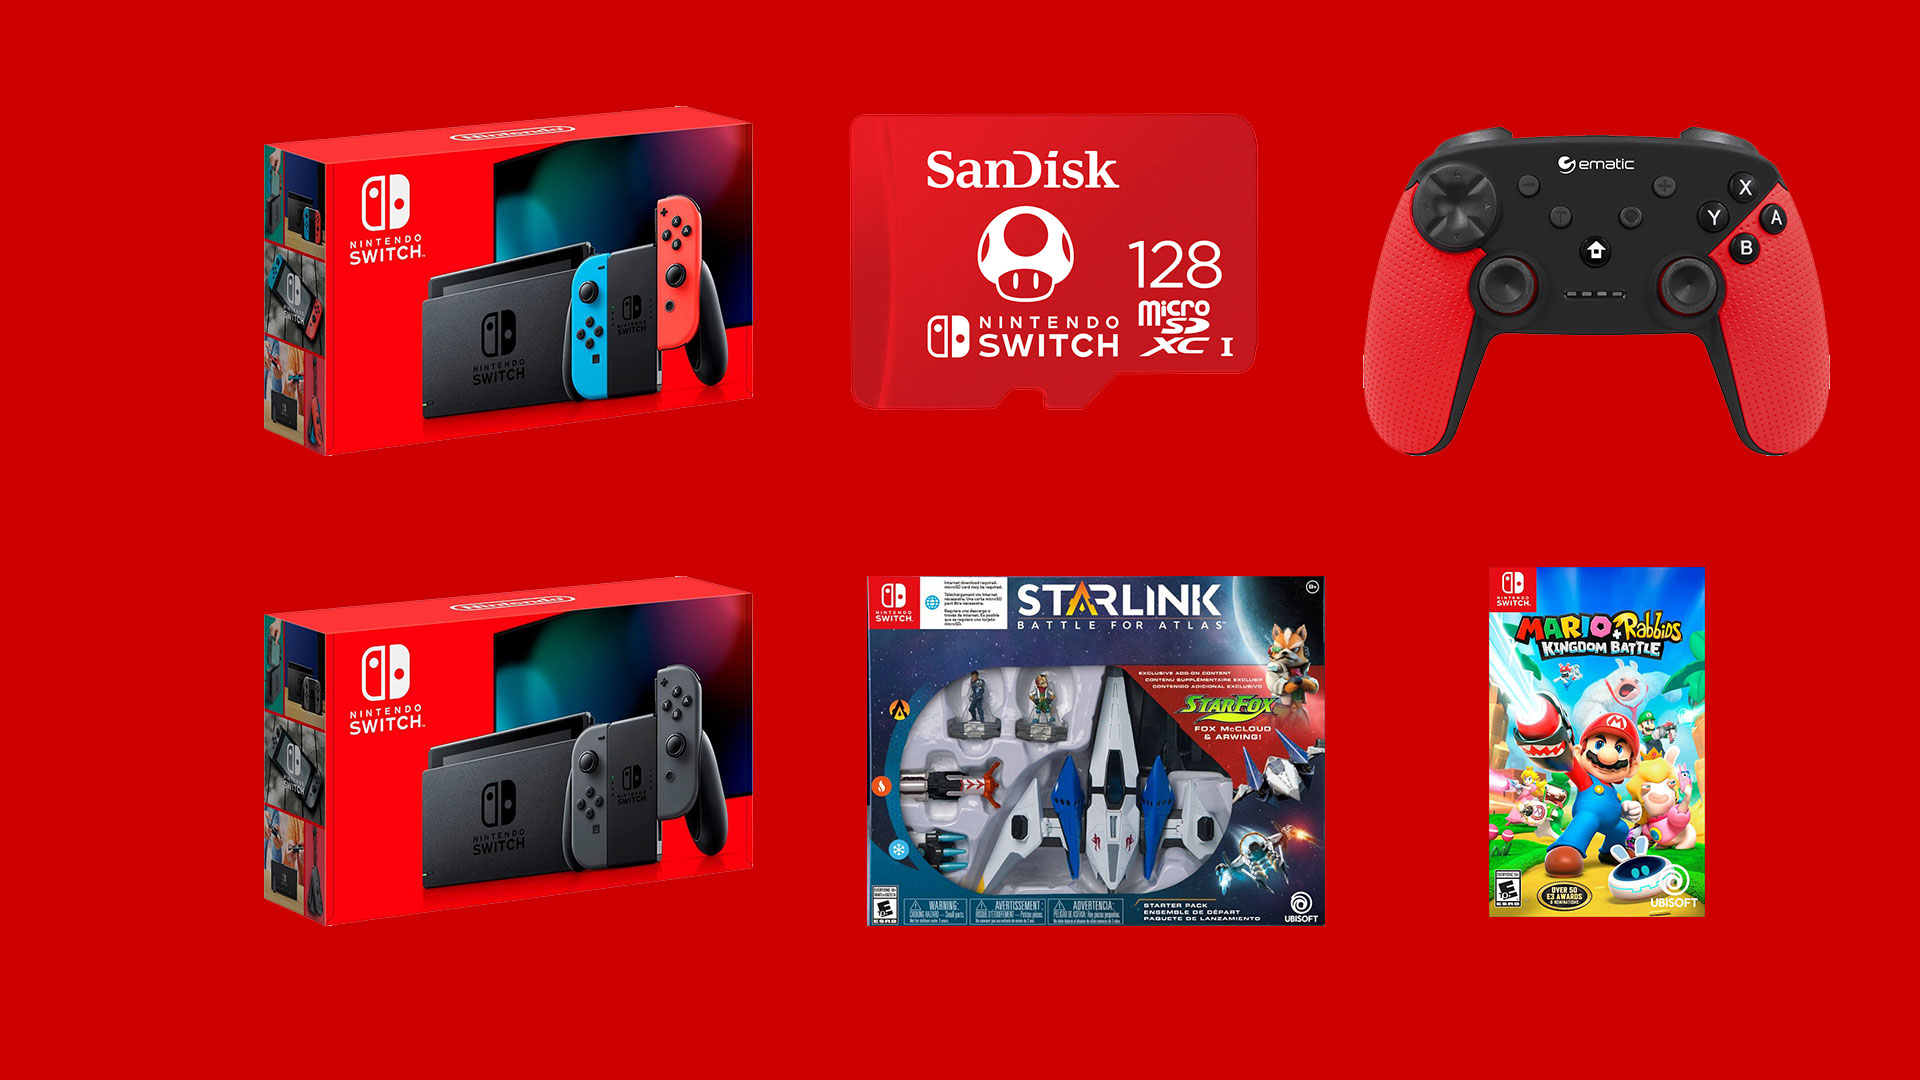 Cyber Monday Nintendo Switch deals are better: free games, SD card, or controllers screenshot